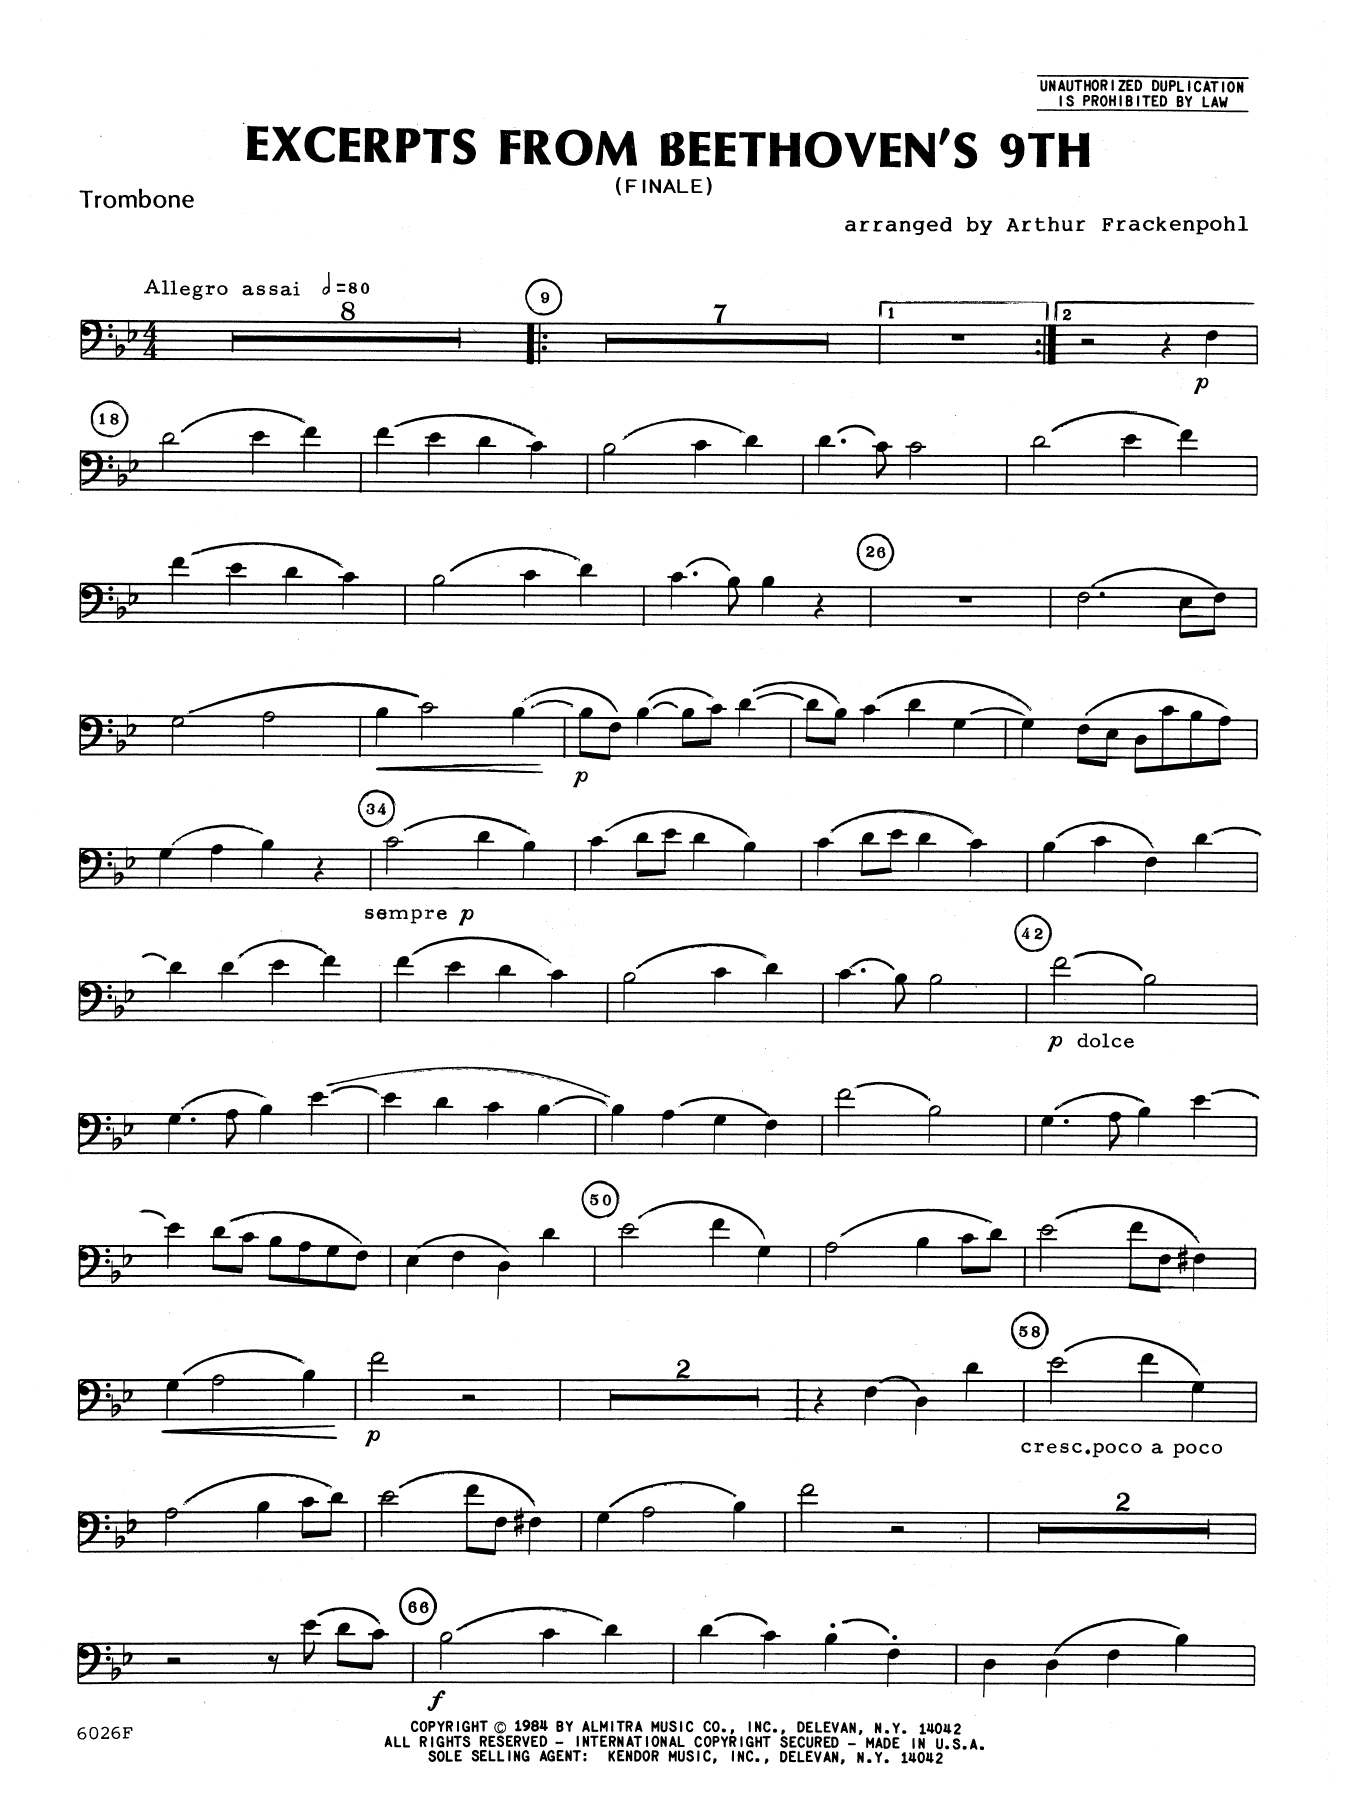 Excerpts From Beethoven's 9th - Trombone Sheet Music